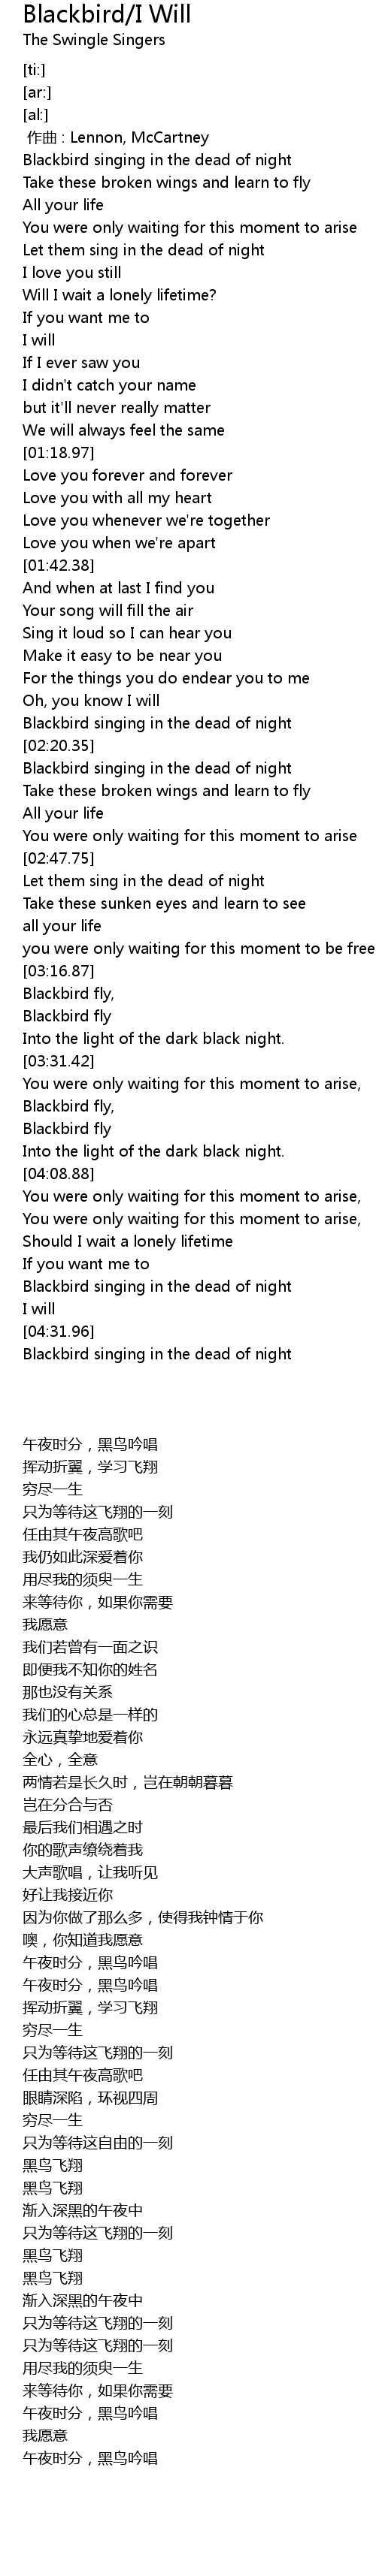 Blackbird I Will Lyrics Follow Lyrics